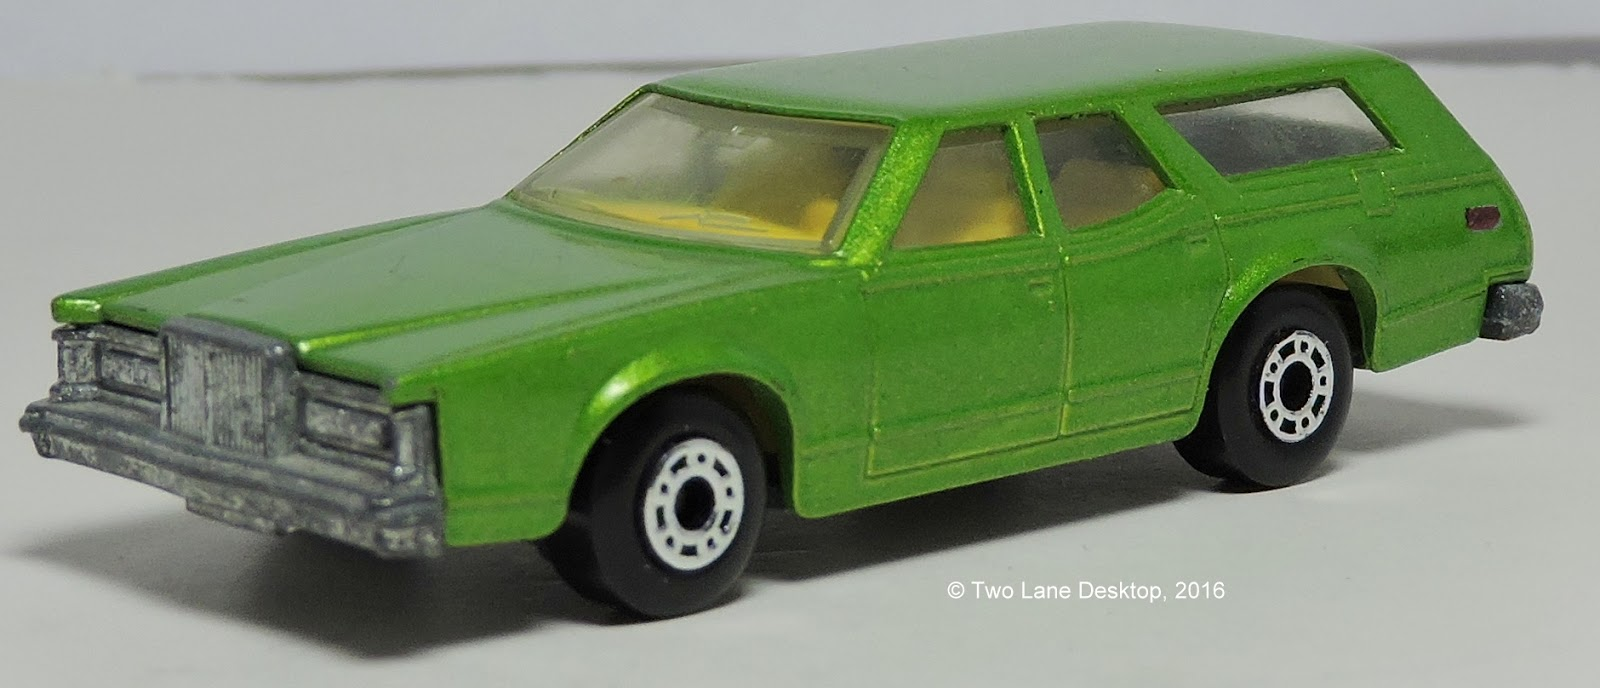 Matchbox Wagons Audi Rs6 Avant And Mercury Cougar Villager Two 1960s